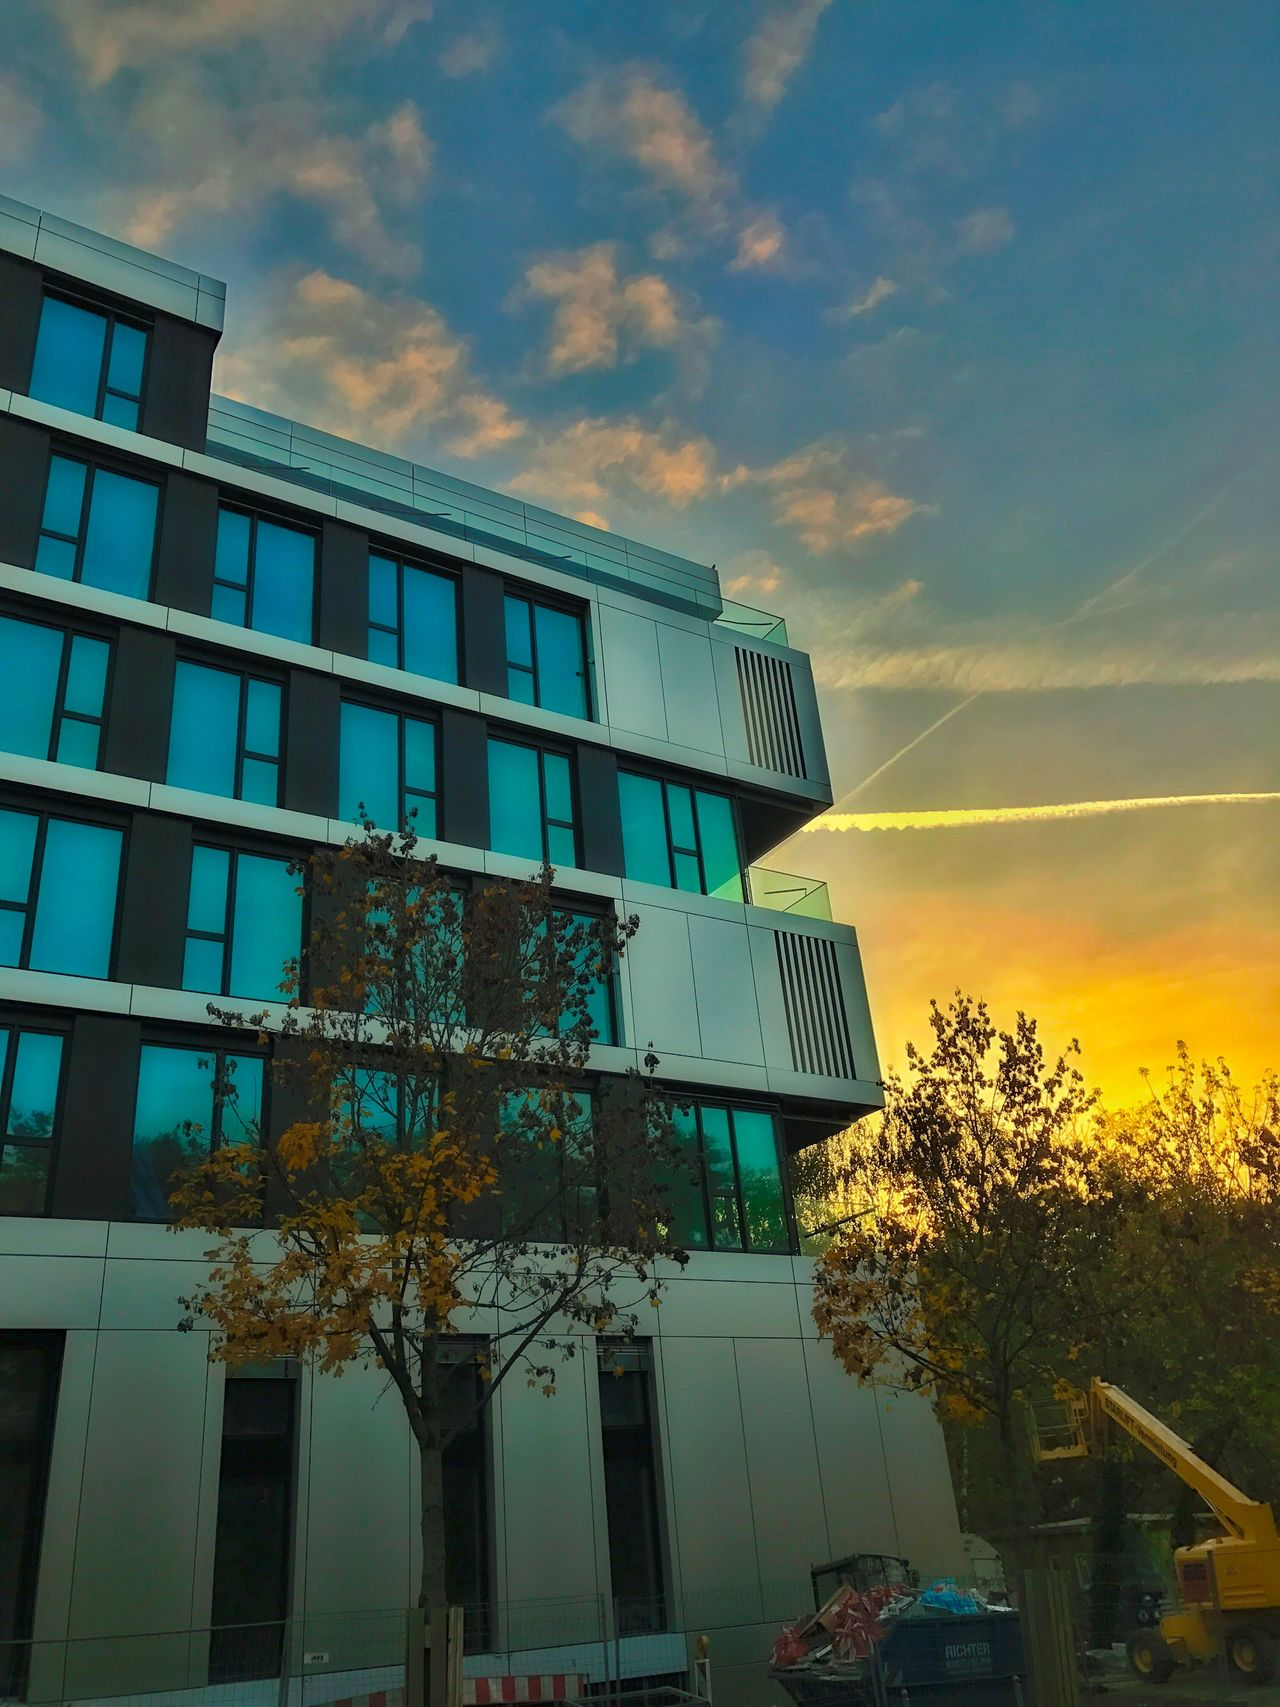 Potsdam Sonnenaufgang Architecture Built Structure Sky Tree Herbst Himmel Sky And Clouds Sunset Reflection Cloud - Sky Beauty In Nature Architecture Building Exterior Orange Color Architektur Fassade Fassade Facade Building Still Life Fine Art IPhone 7 Plus No People Sunlight Autumn